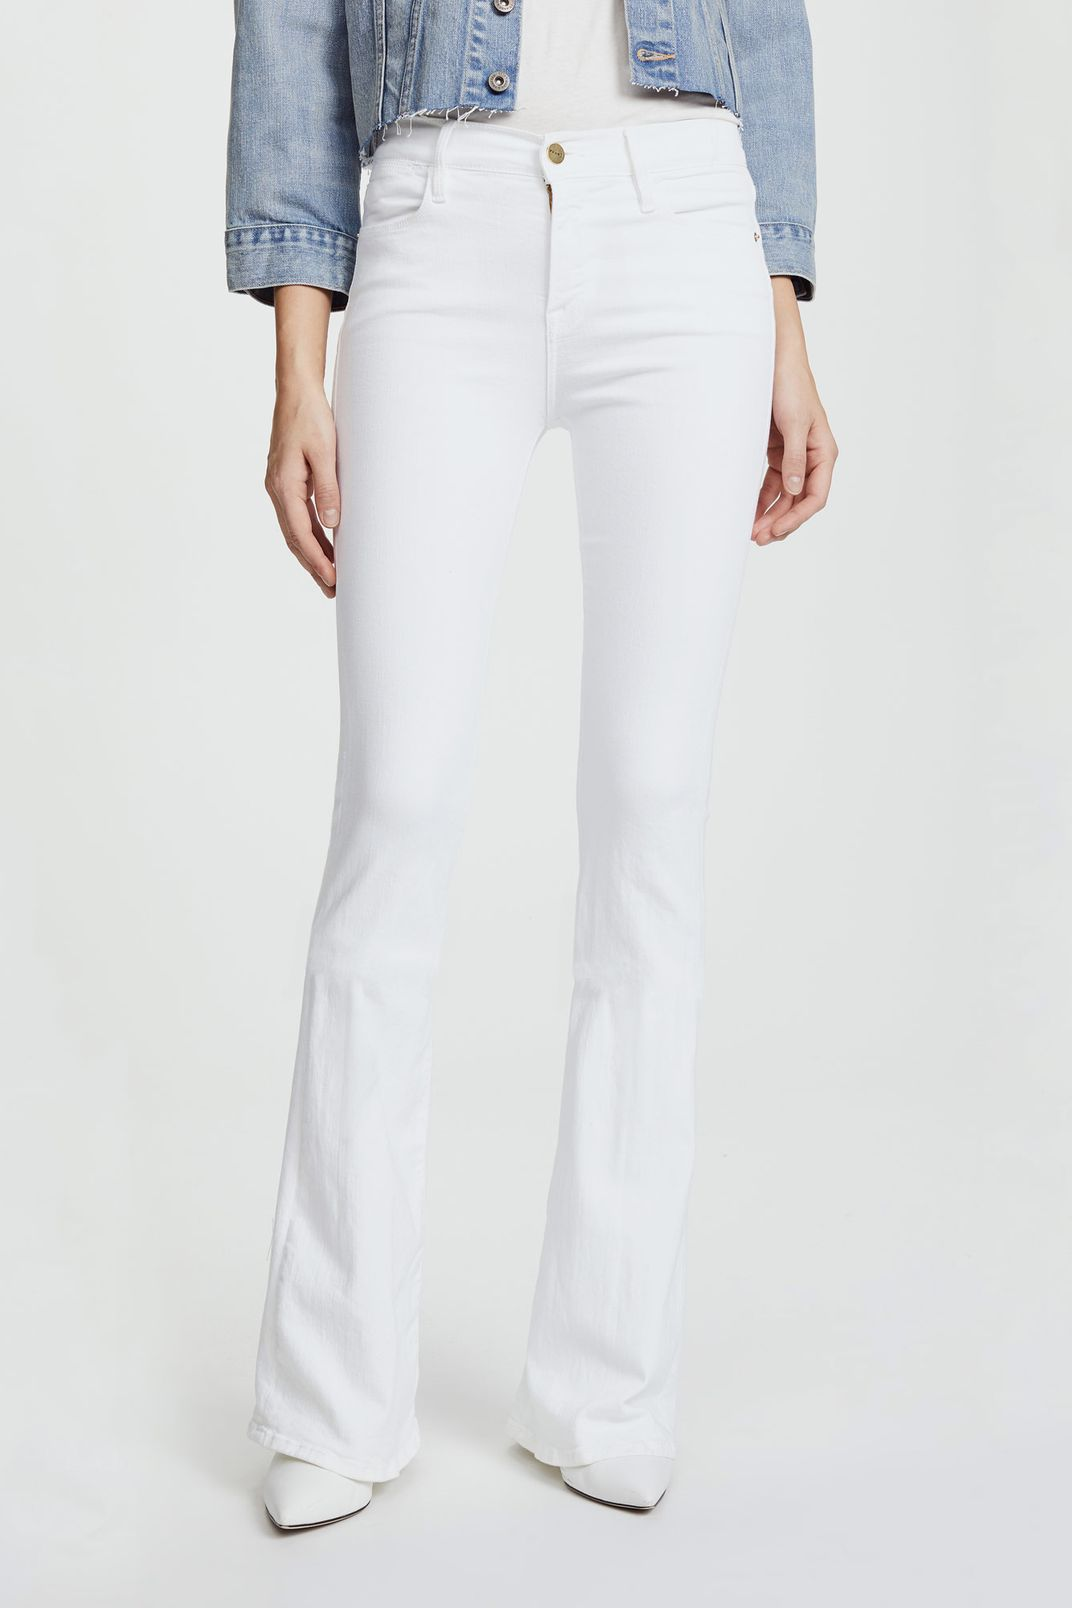 Watch The Best White Jeans For Standing Out Year-Round video